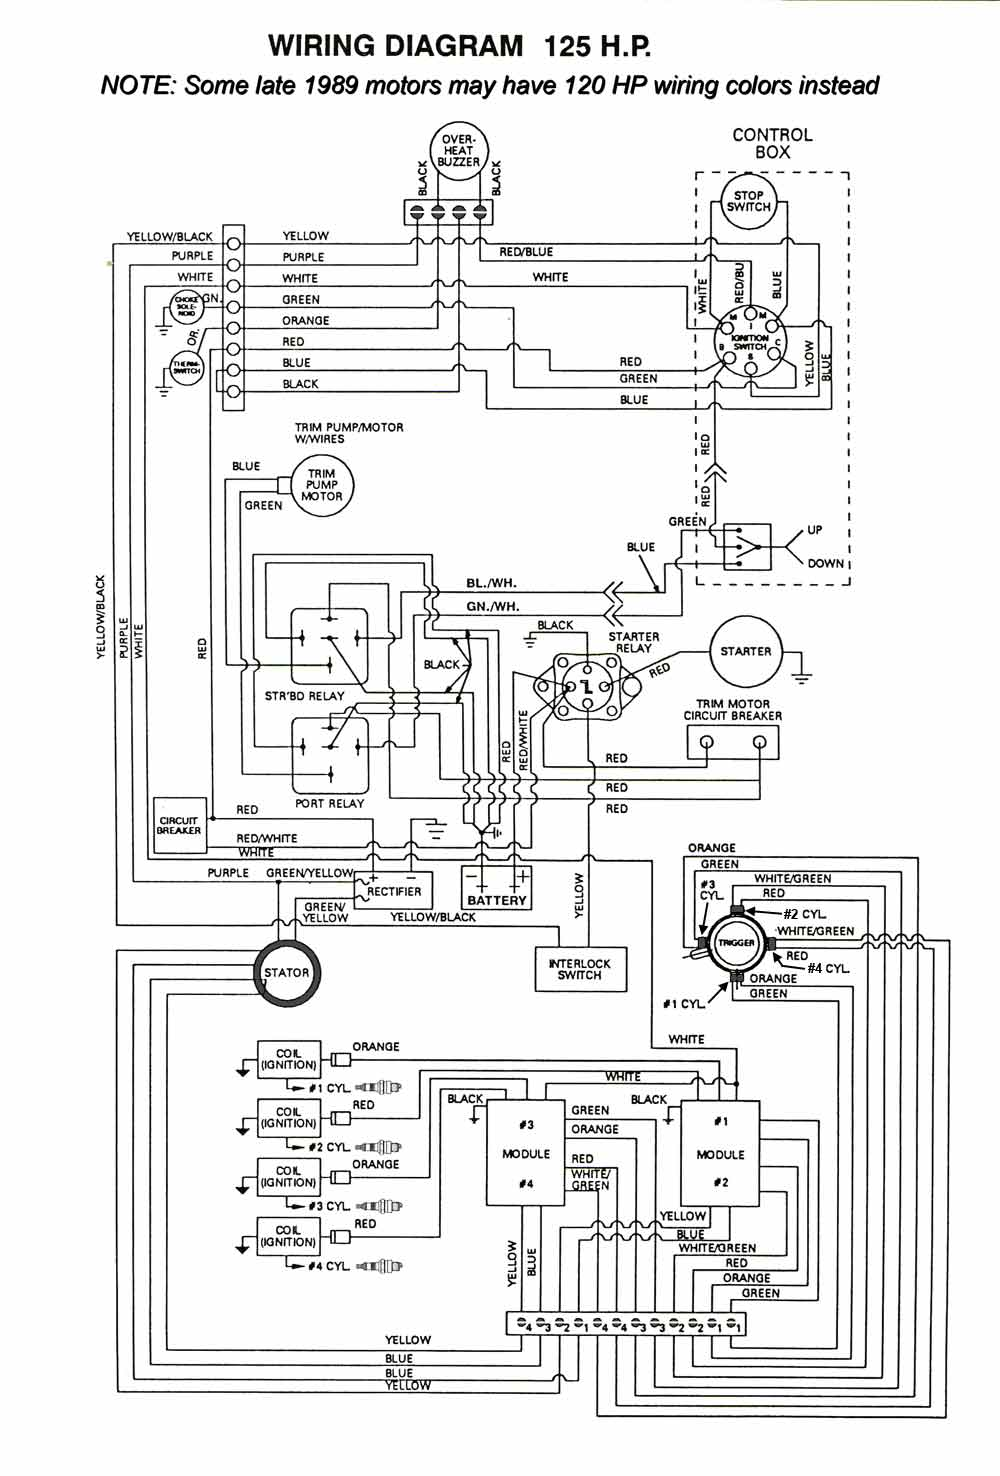 diagram of 1981 mercury marine mercury outboard 1007500 gear housing